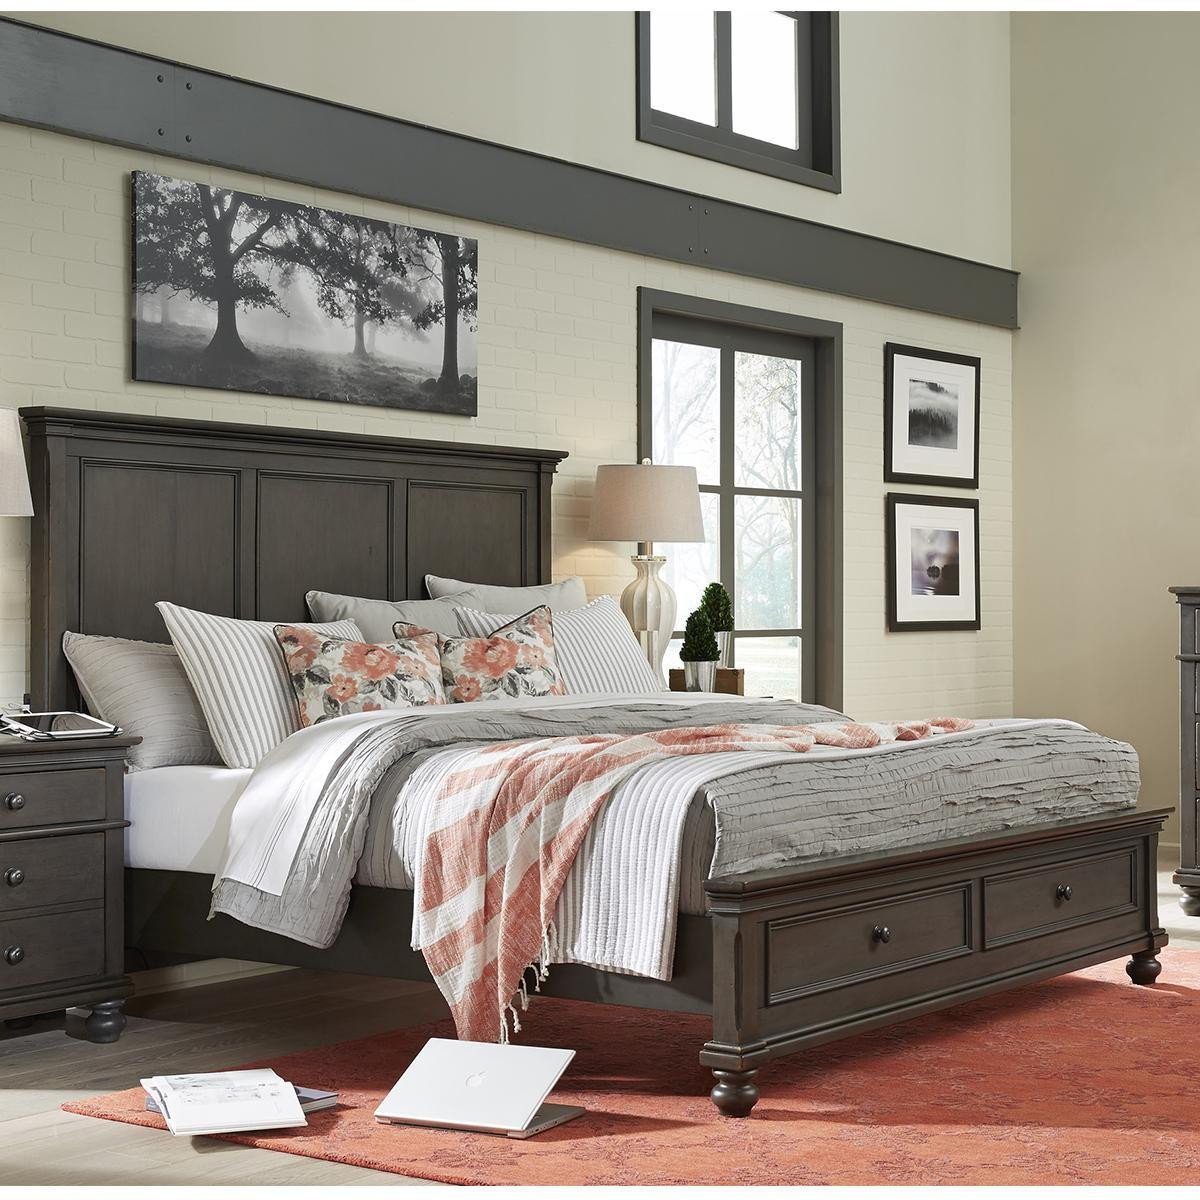 4 Piece Queen Bedroom Set Elegant Riva Ridge Oxford 4 Piece Queen Bedroom Set In Peppercorn